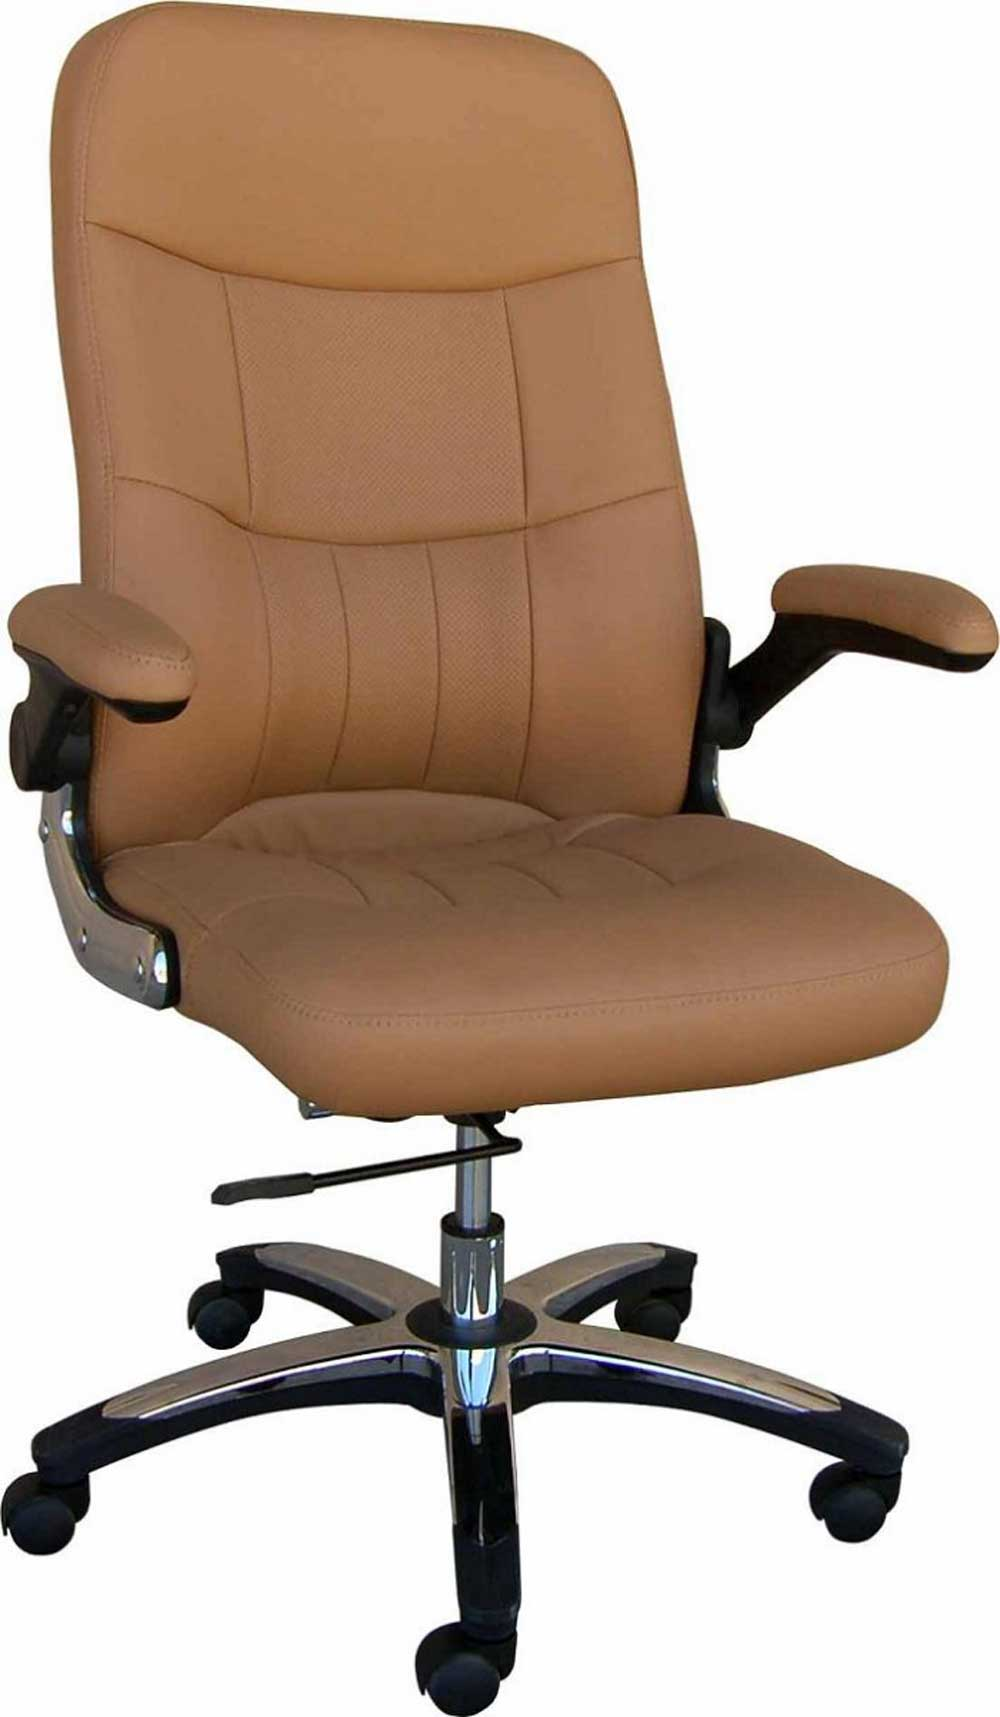 Most Comfortable Office Work Chair American Hwy